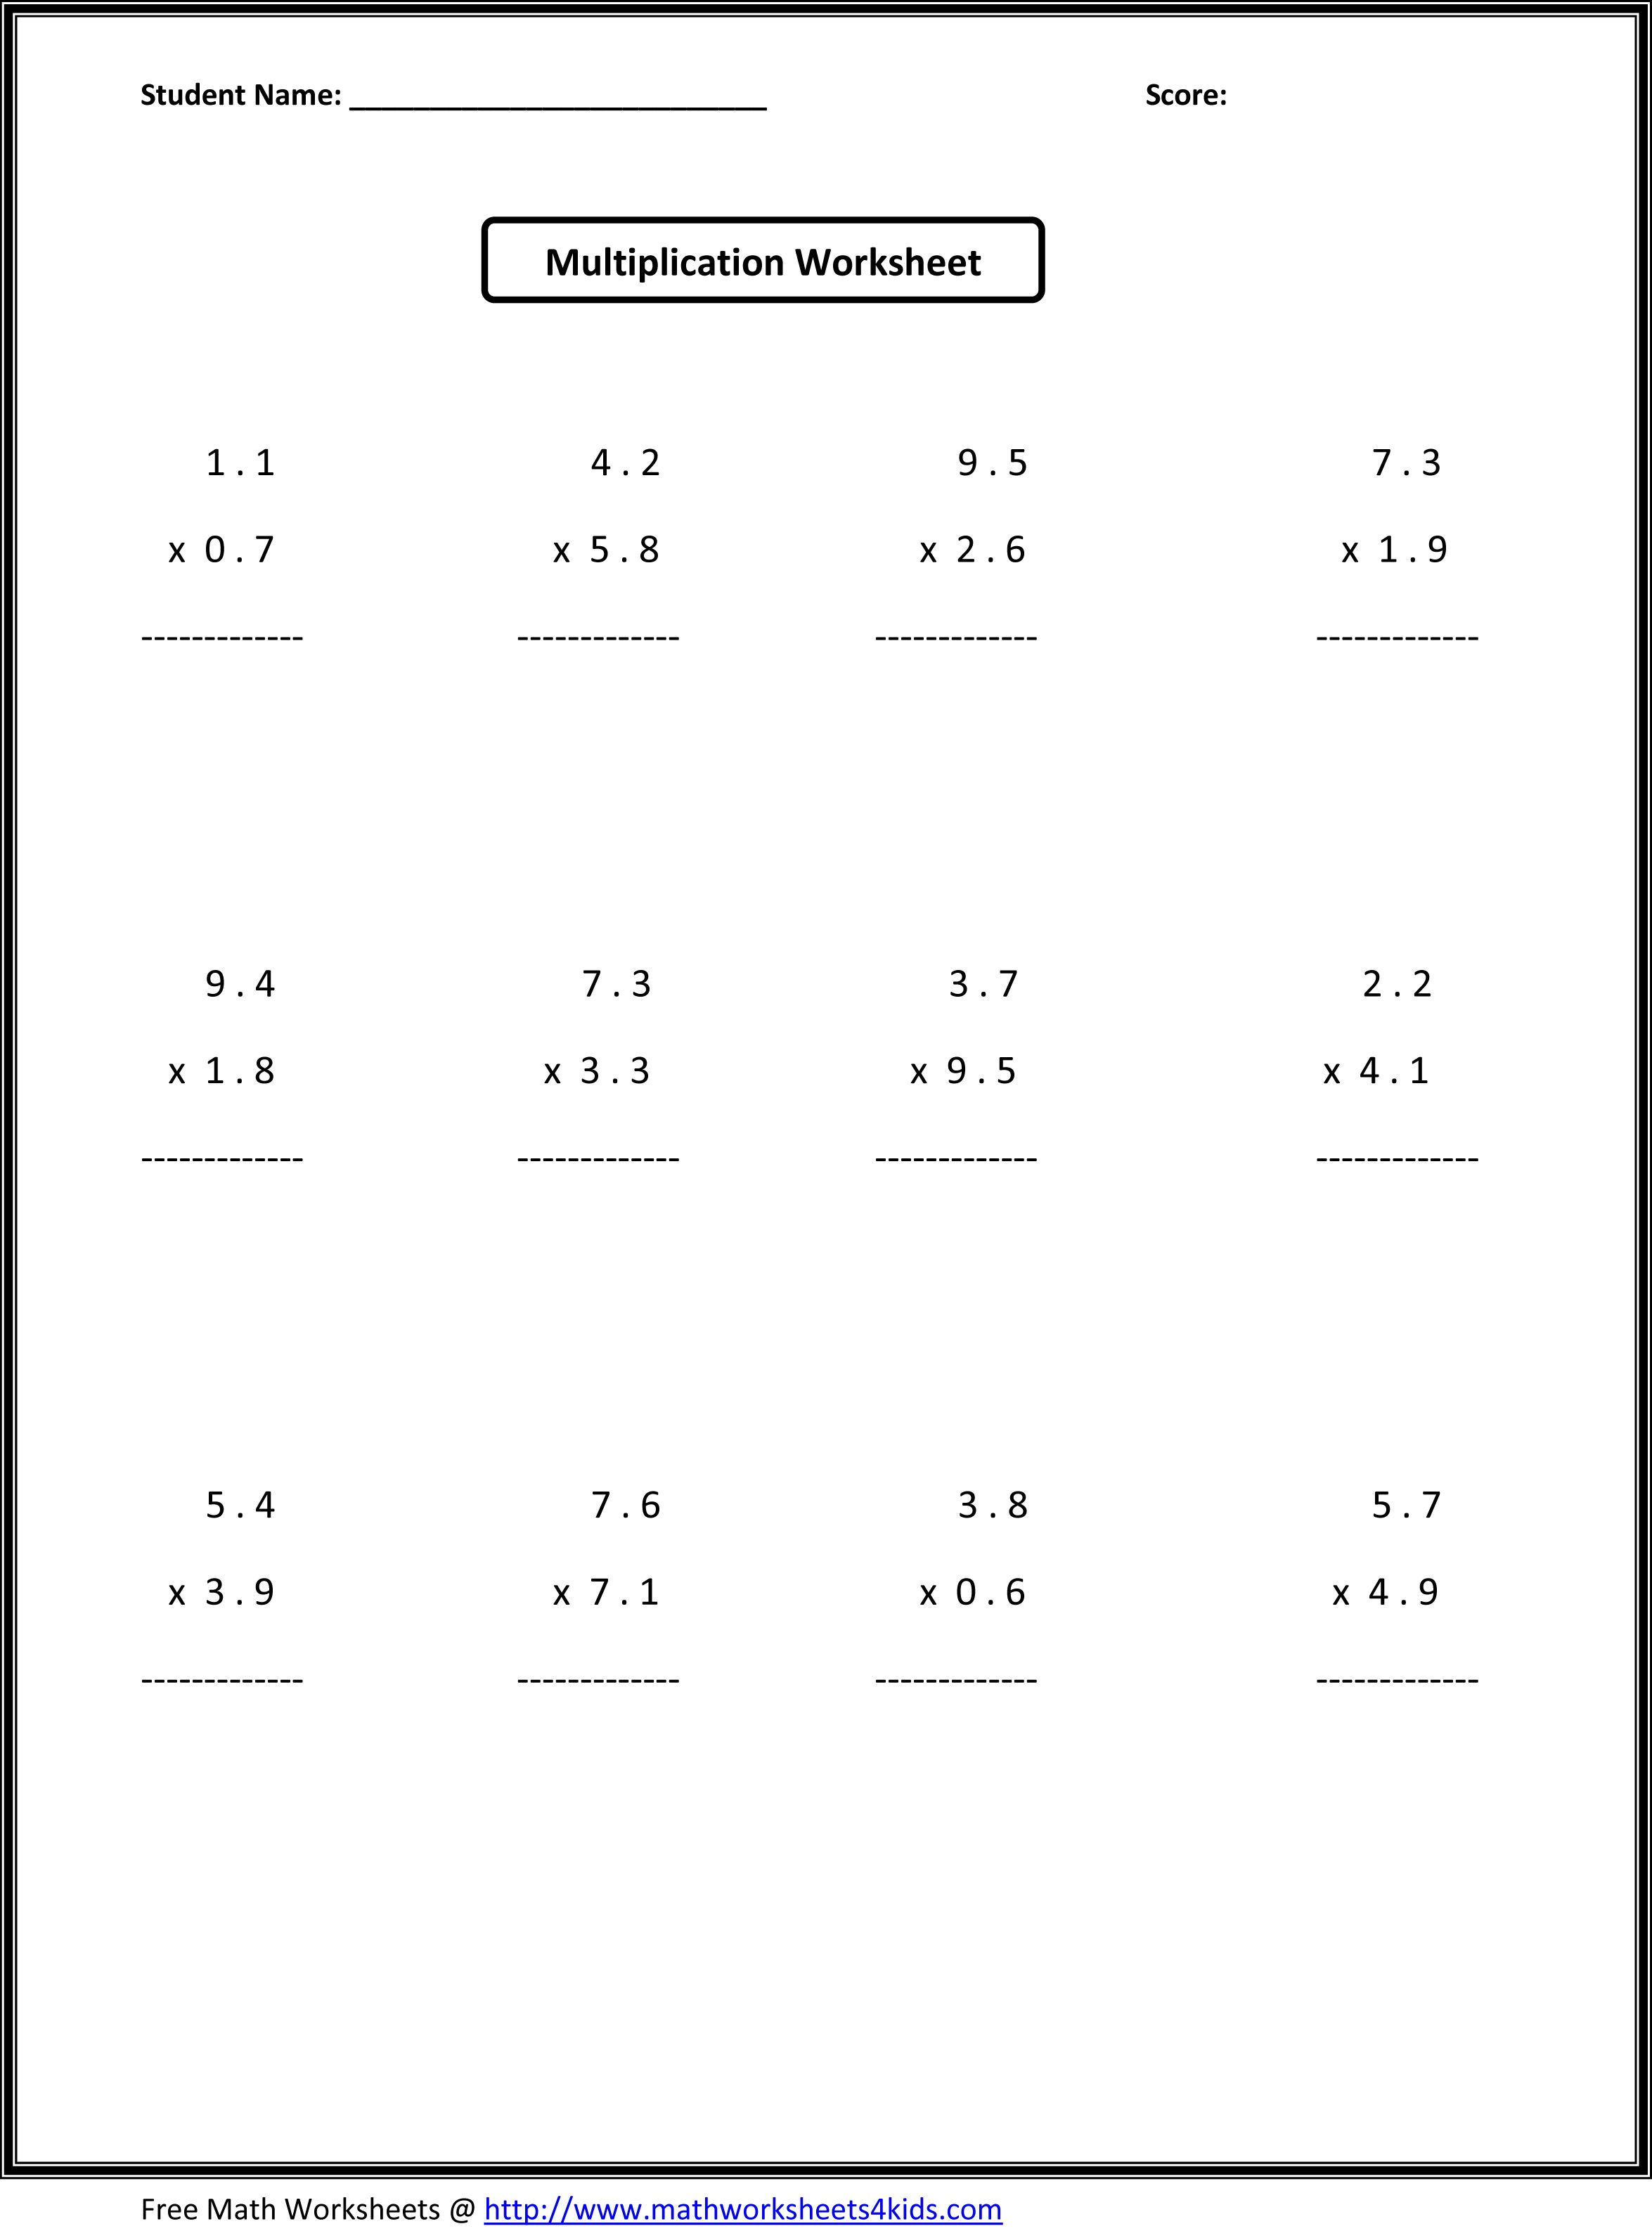 worksheet 6th Grade Math Review Worksheets 10 images about math on pinterest maze a project and 7th grade math